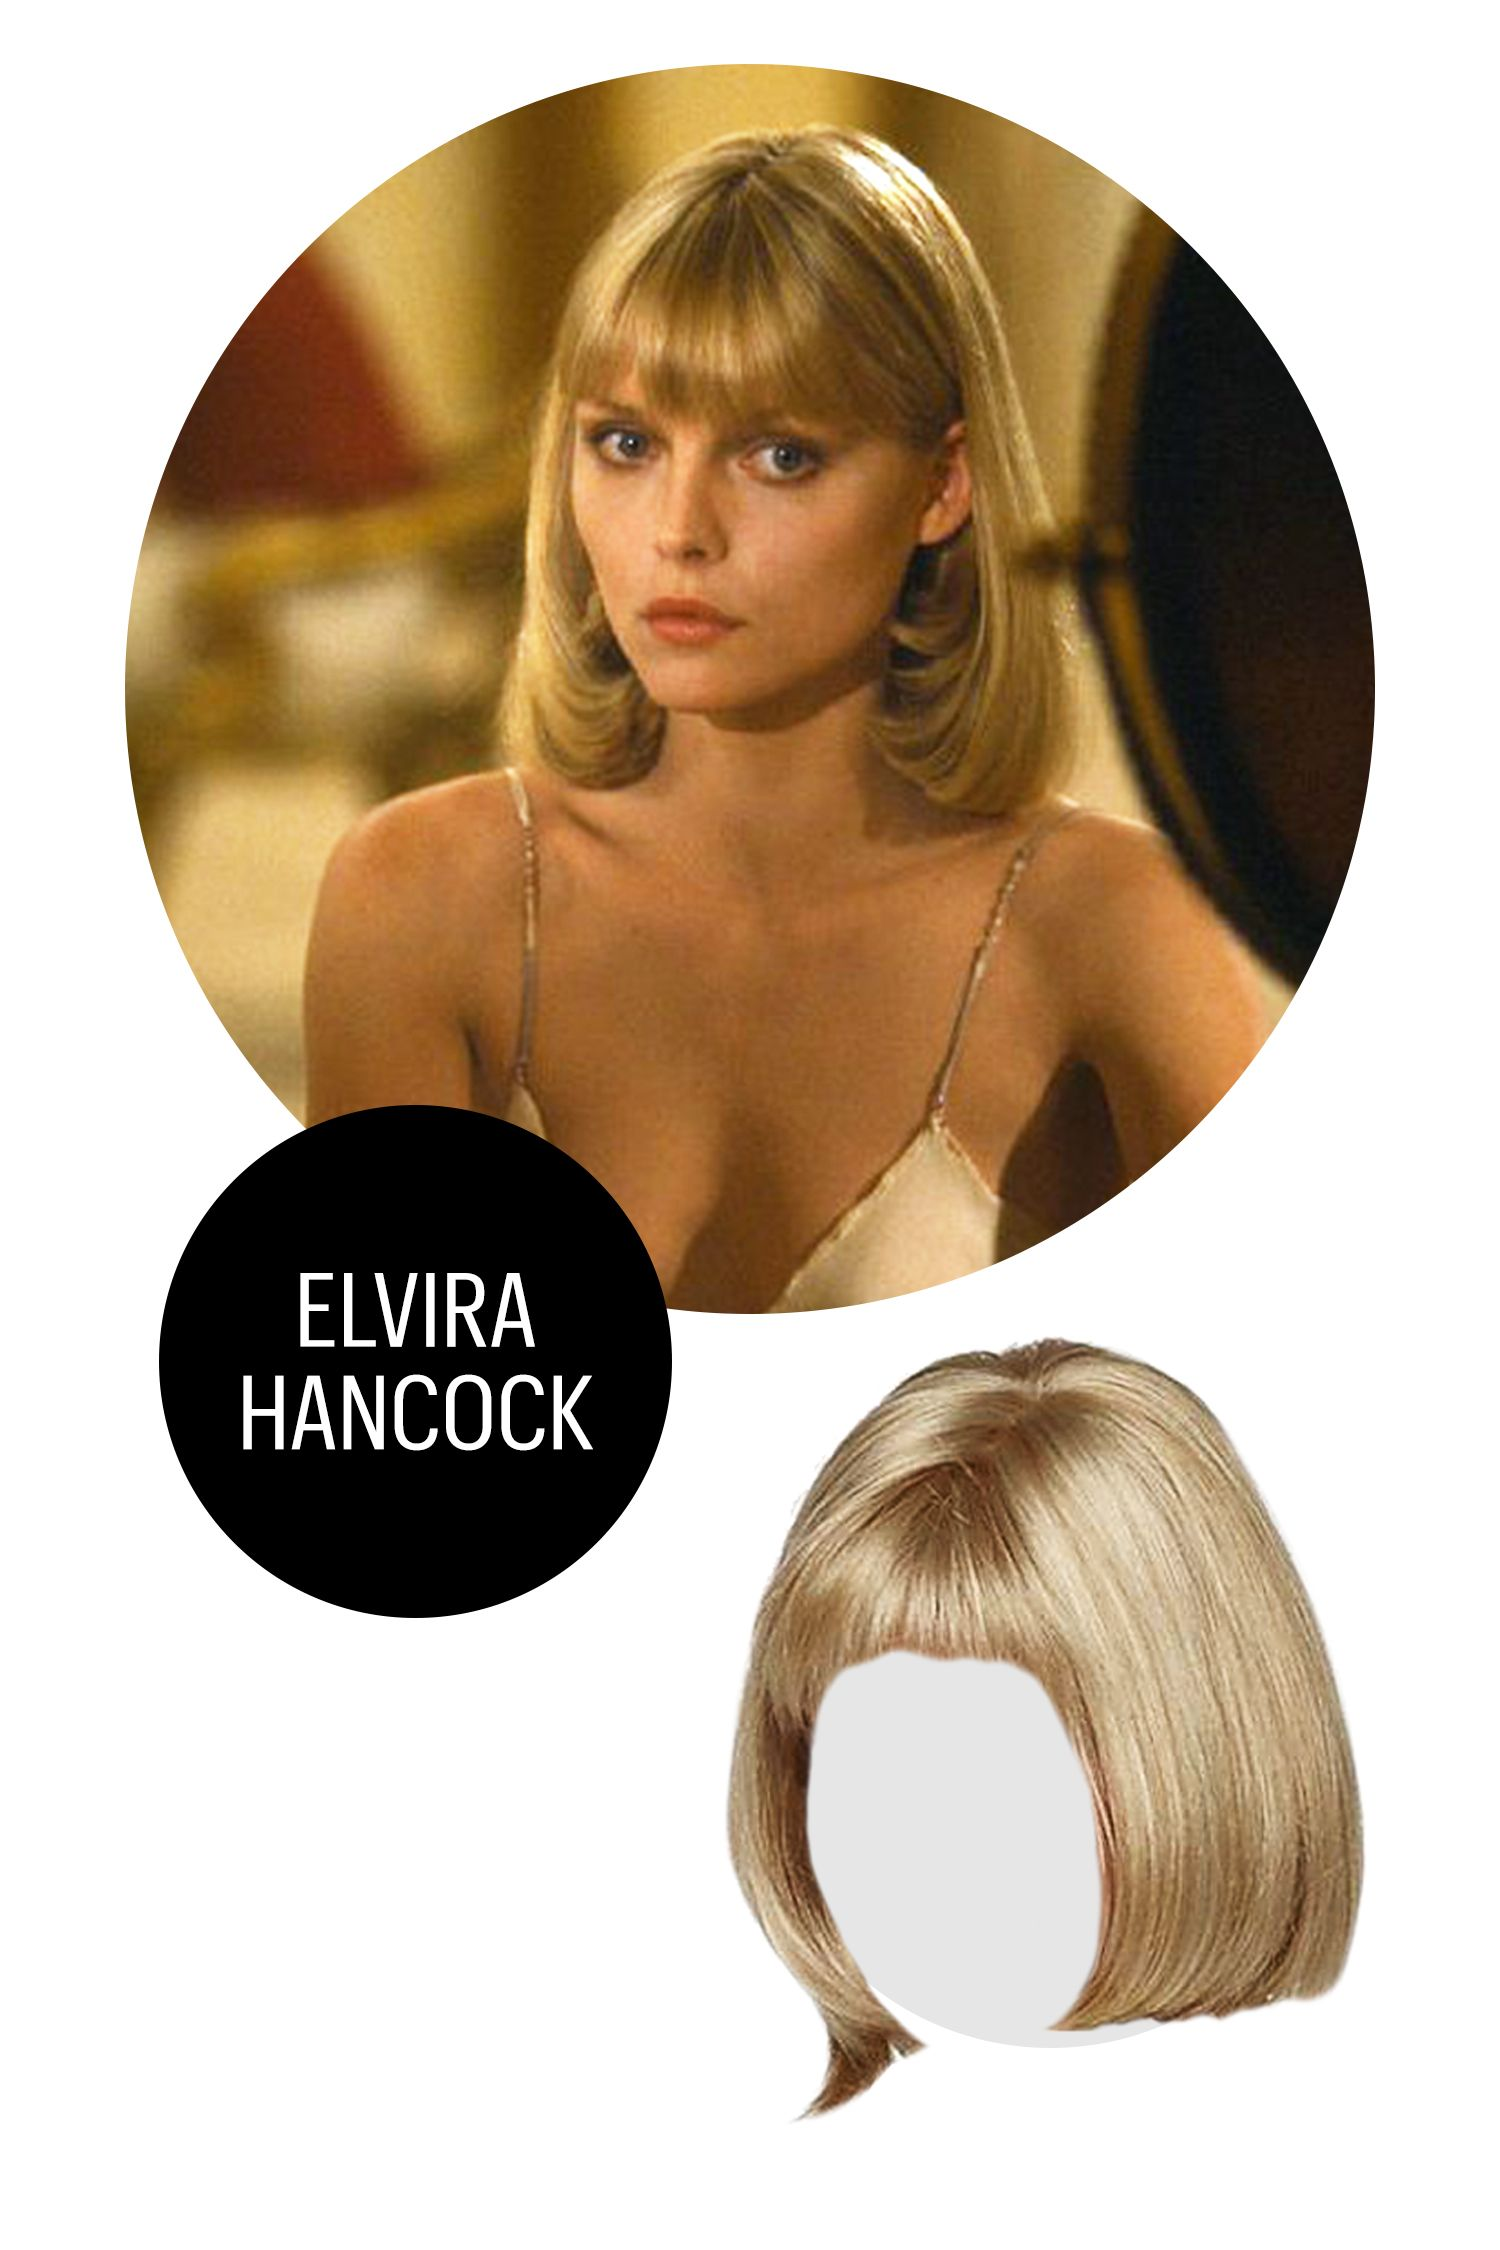 "<p>Whether or not you want to get mixed up with a Tony Montana type, you're going to invite attention channeling Hancock's OG glamour. Once you're working her shoulder-length, dirty blonde fringed bob 'do, slip into something ultra-slinky, like a slip dress.</p><p class=""p2"">Elvira Hancock, $29.99; <a href=""http://www.lightinthebox.com/bob-synthetic-wigs-short-straight-hair-blonde-wig-for-women-natural-wigs-with-bangs_p3762383.html"" target=""_blank"">lightinthebox.com</a>.<span></span><br></p>"